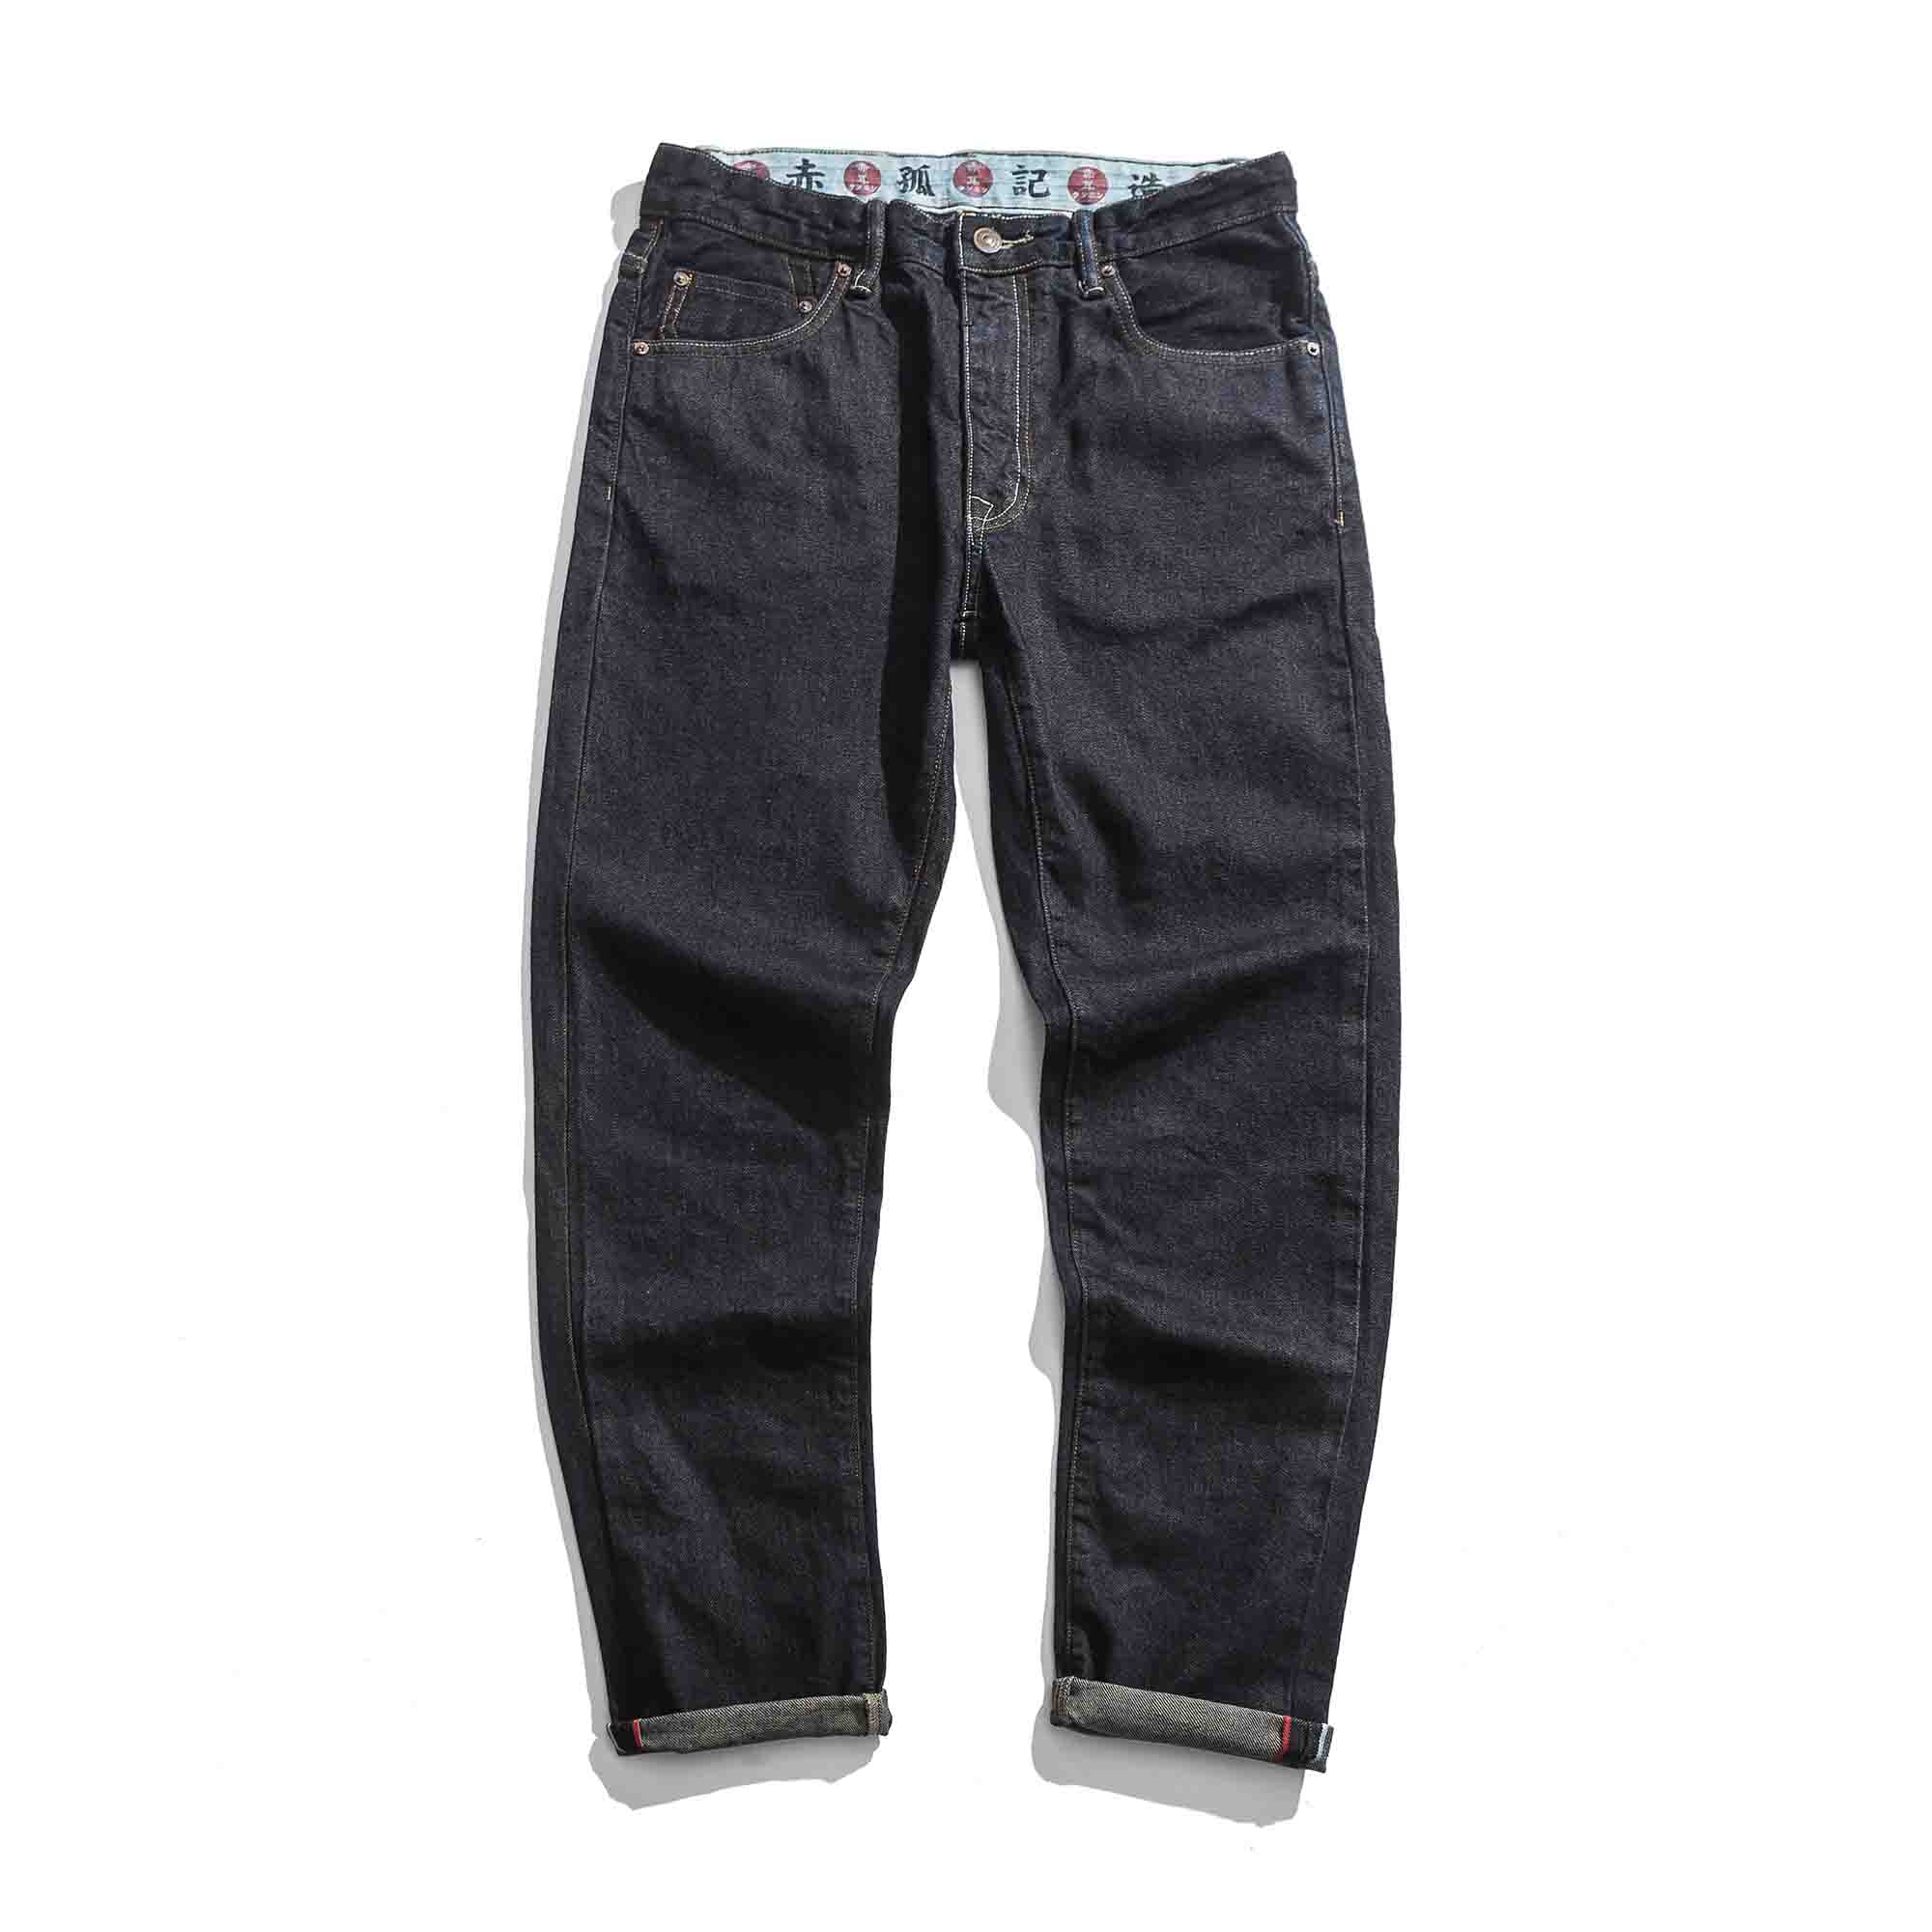 Men Casual Japan Dk Indigo Red Listed Selvdge Denim Jeans